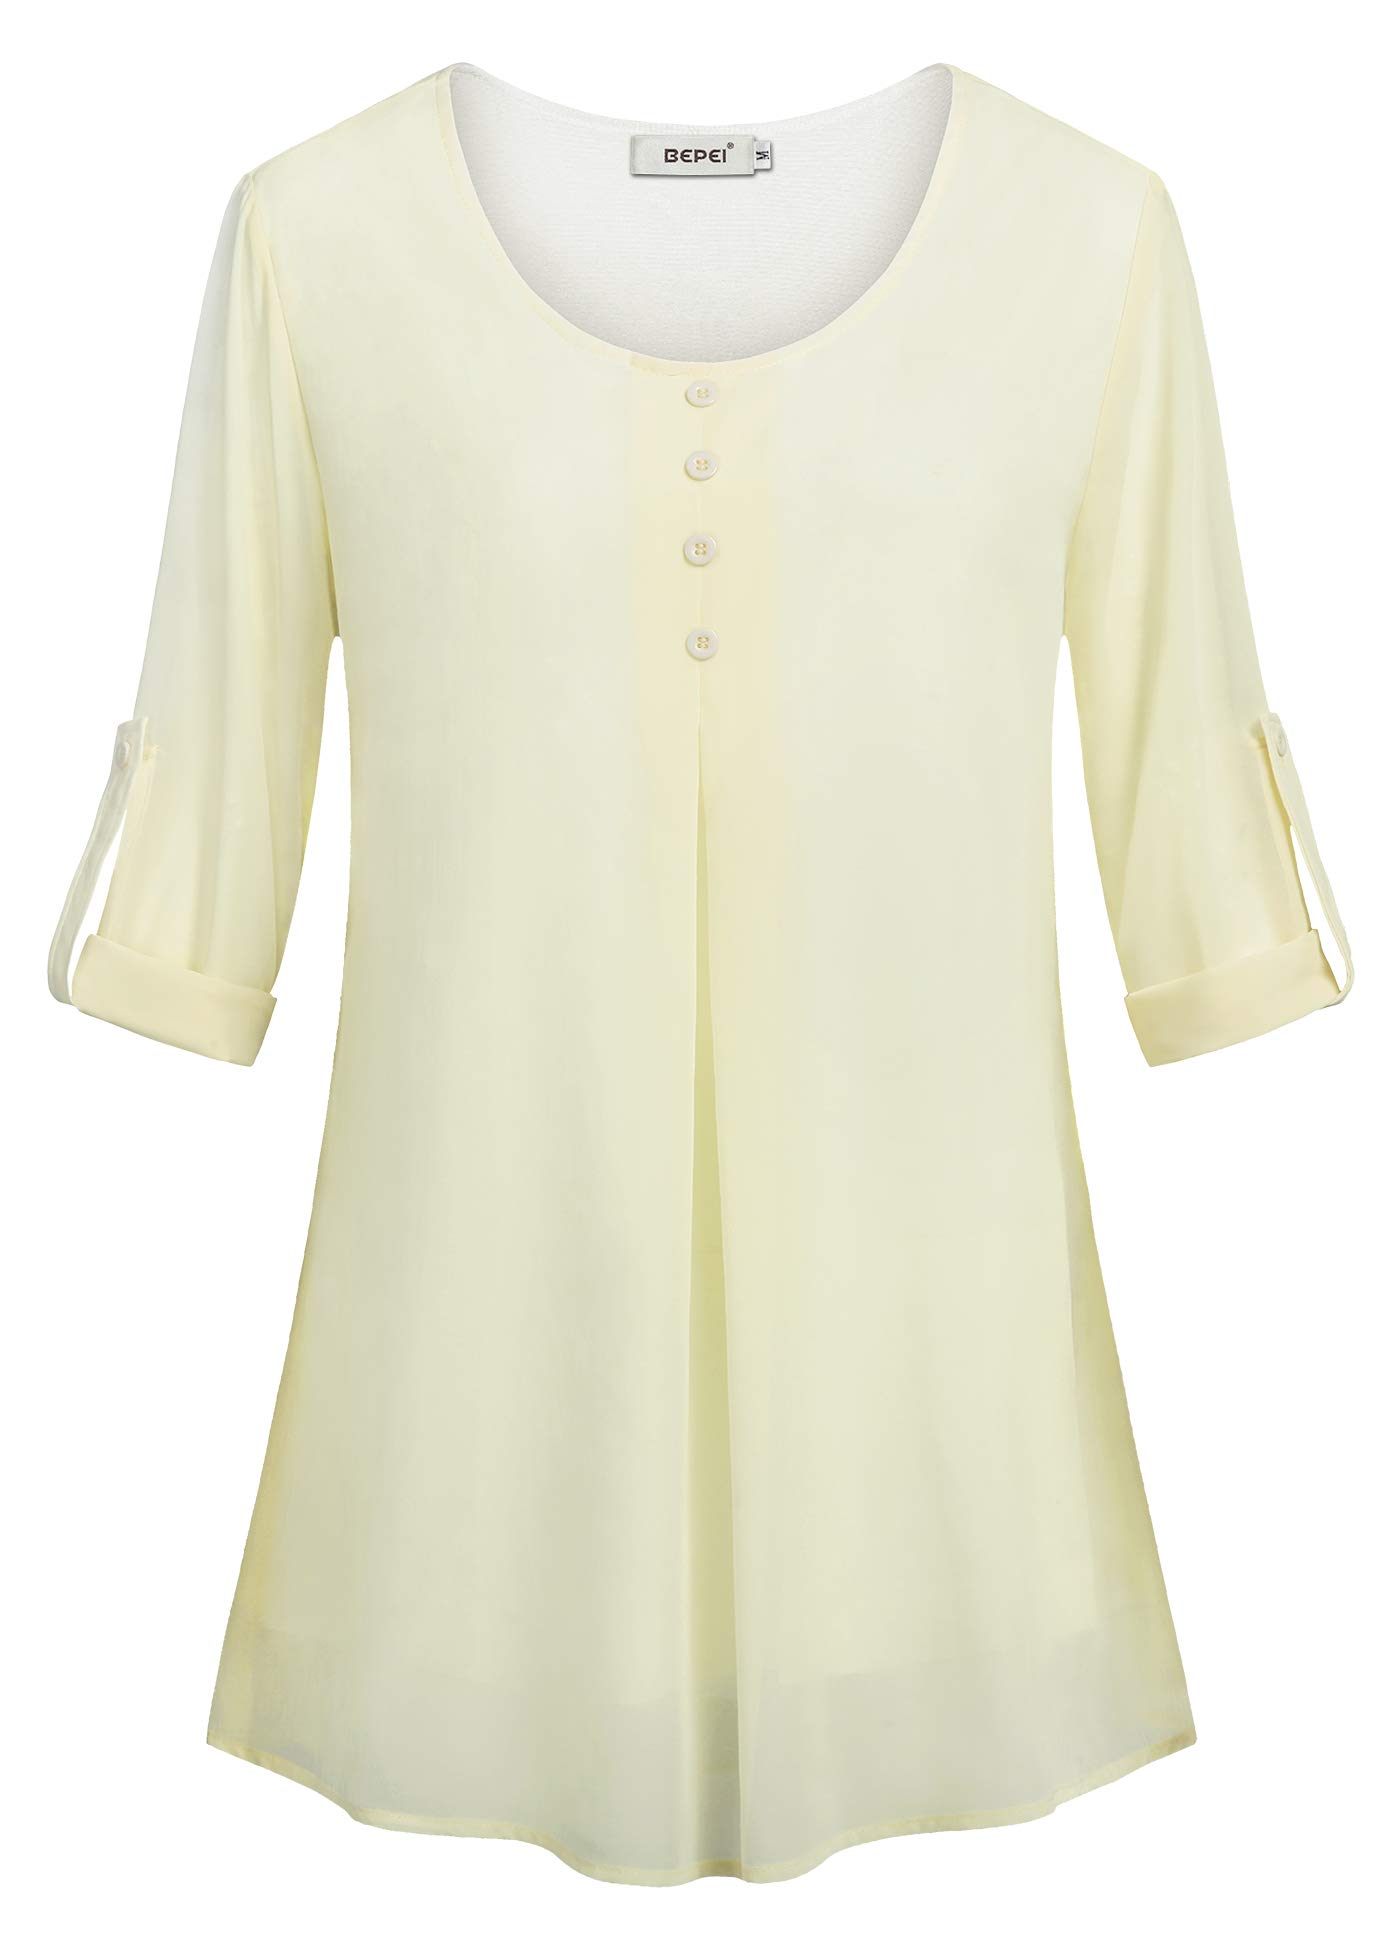 BEPEI Chiffon Blouses for Women,Juniors Long Sleeve 3/4 Pleated Front Layering Swing Tunic Tank Tops Cute Scoop Neck Solid Color Basic Button-up Tee Shirts for Girls Relaxed Fit Dressy Blouses Beige M